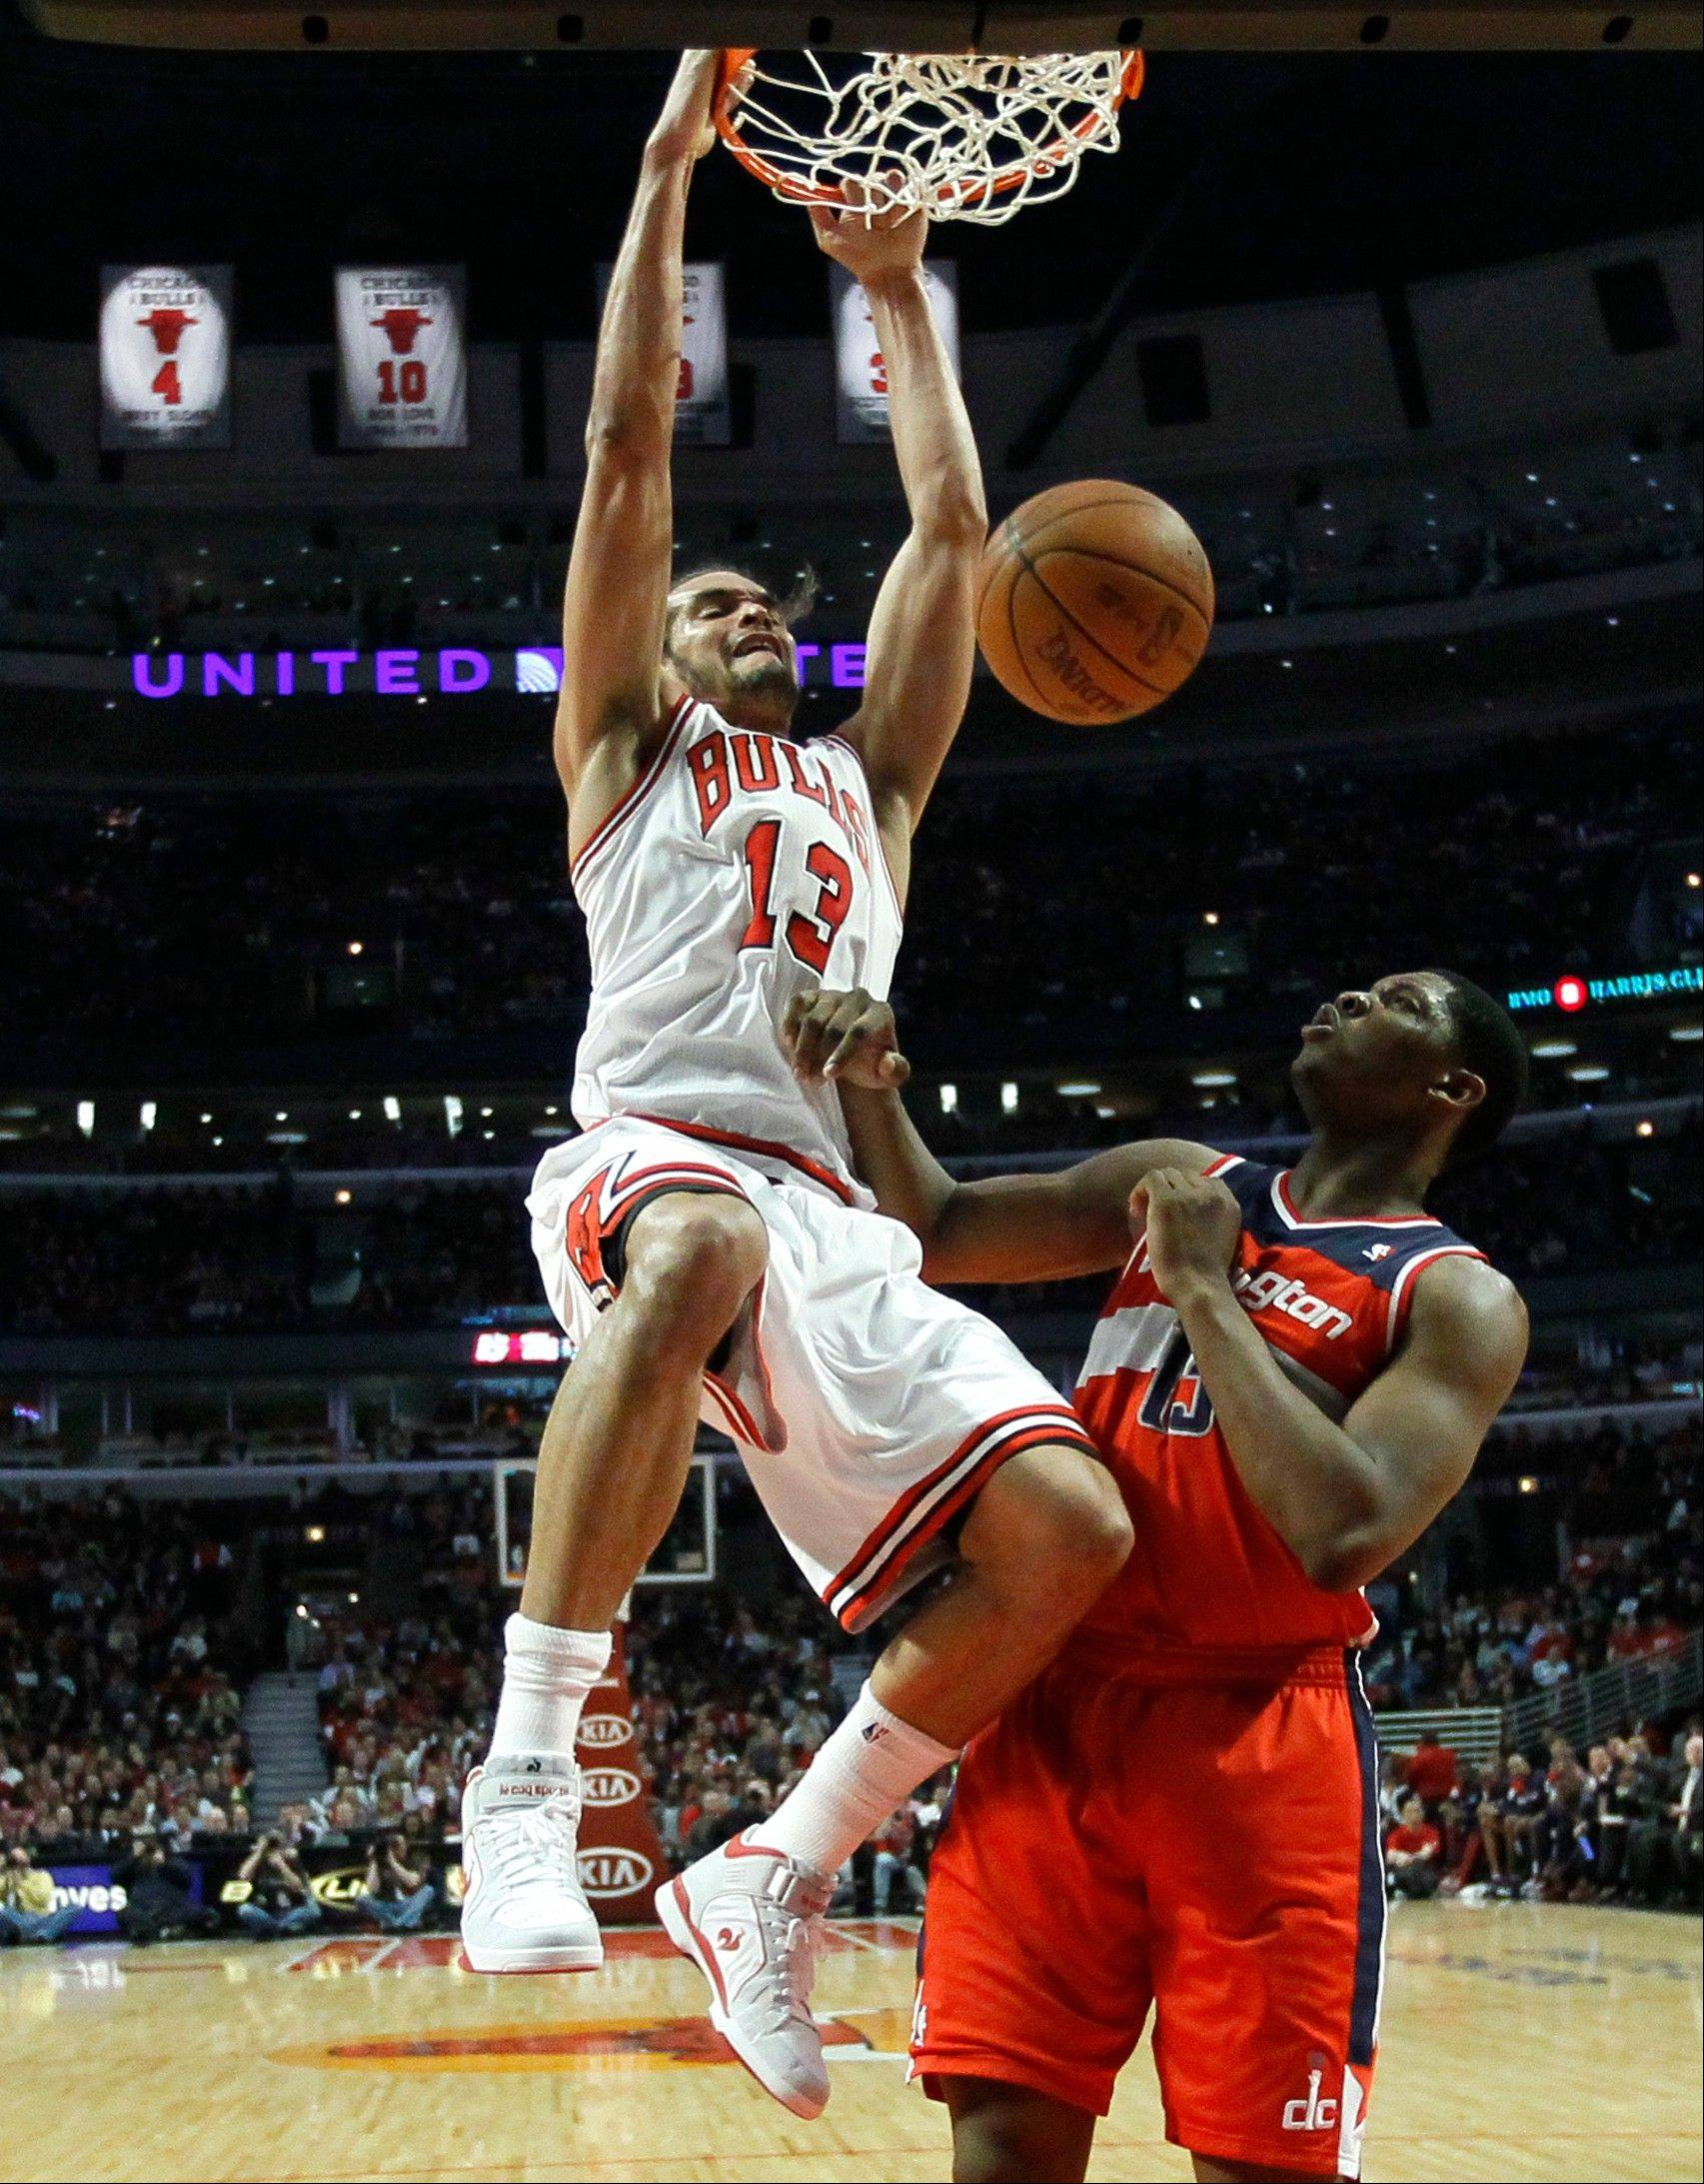 Joakim Noah (13) dunks over Washington Wizards forward Kevin Seraphin during the first half of Washington's victory Monday.